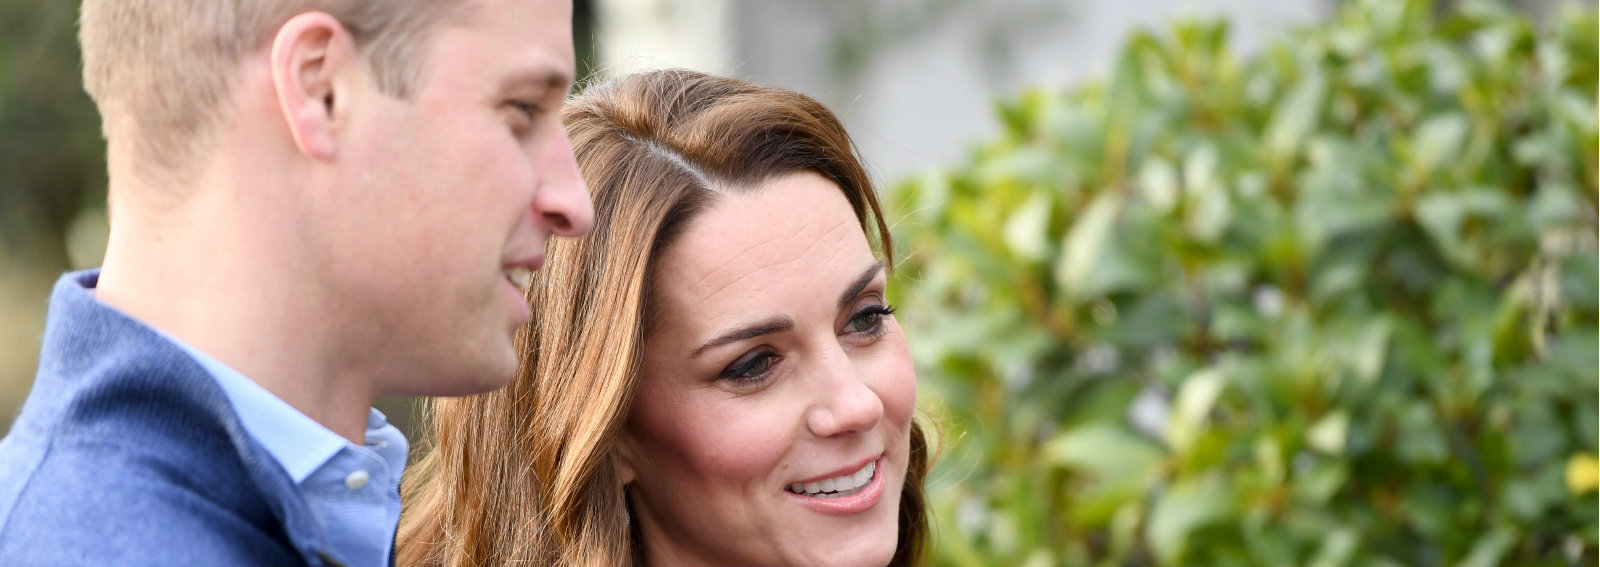 william e kate 1